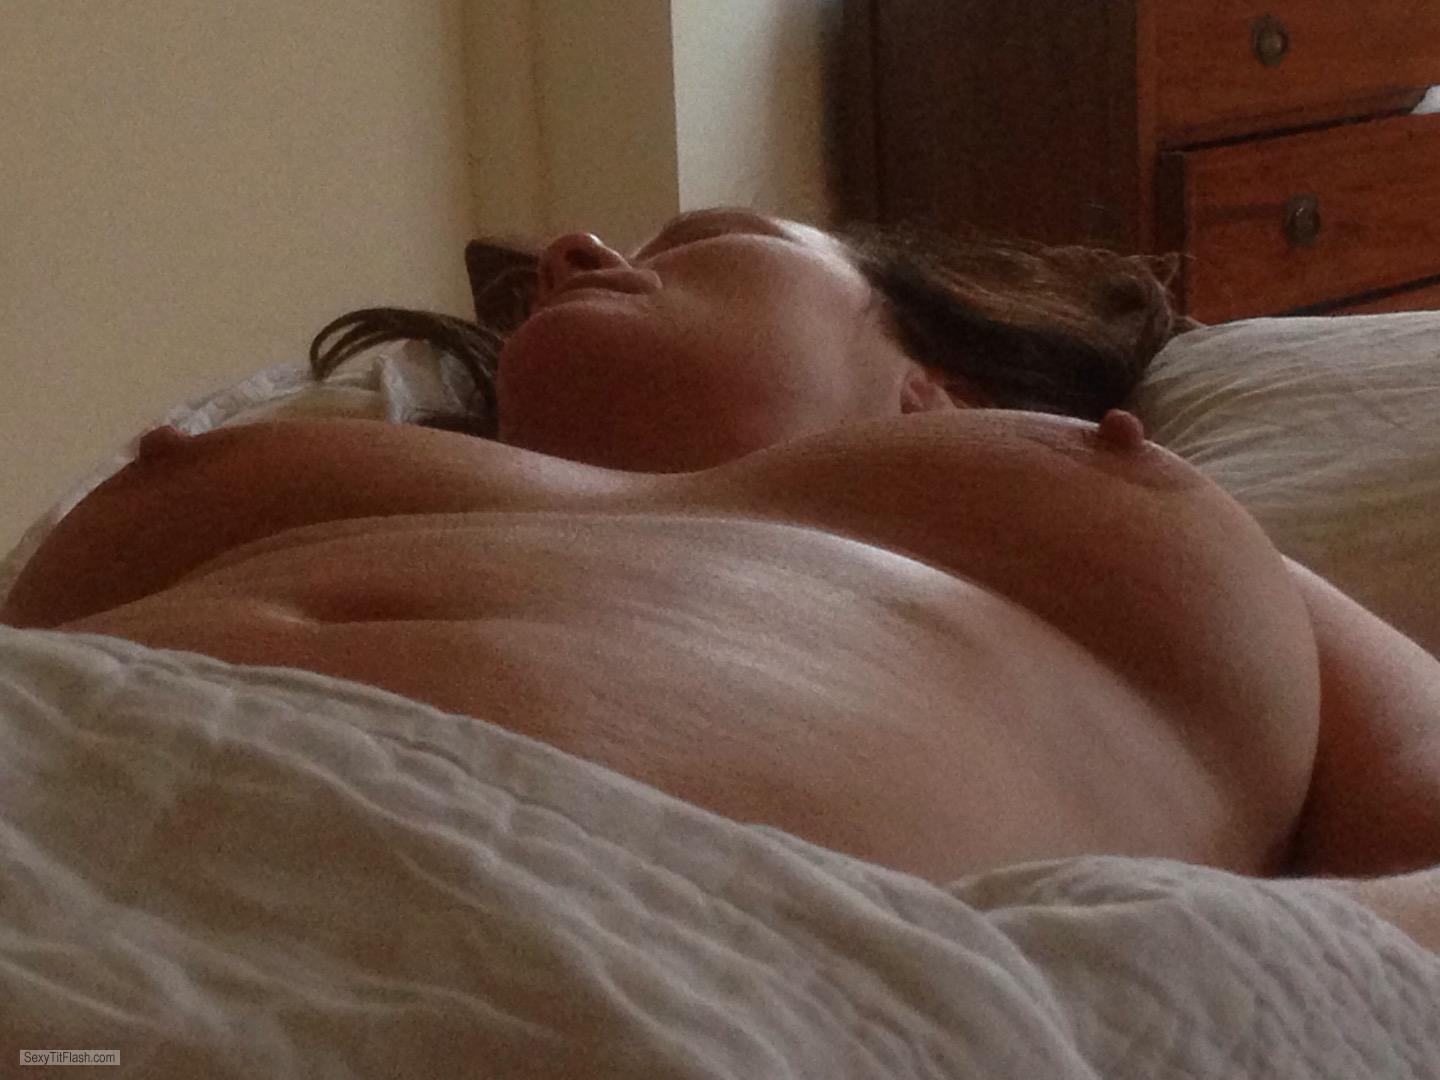 Tit Flash: My Big Tits - Topless 53 Year Old from United Kingdom